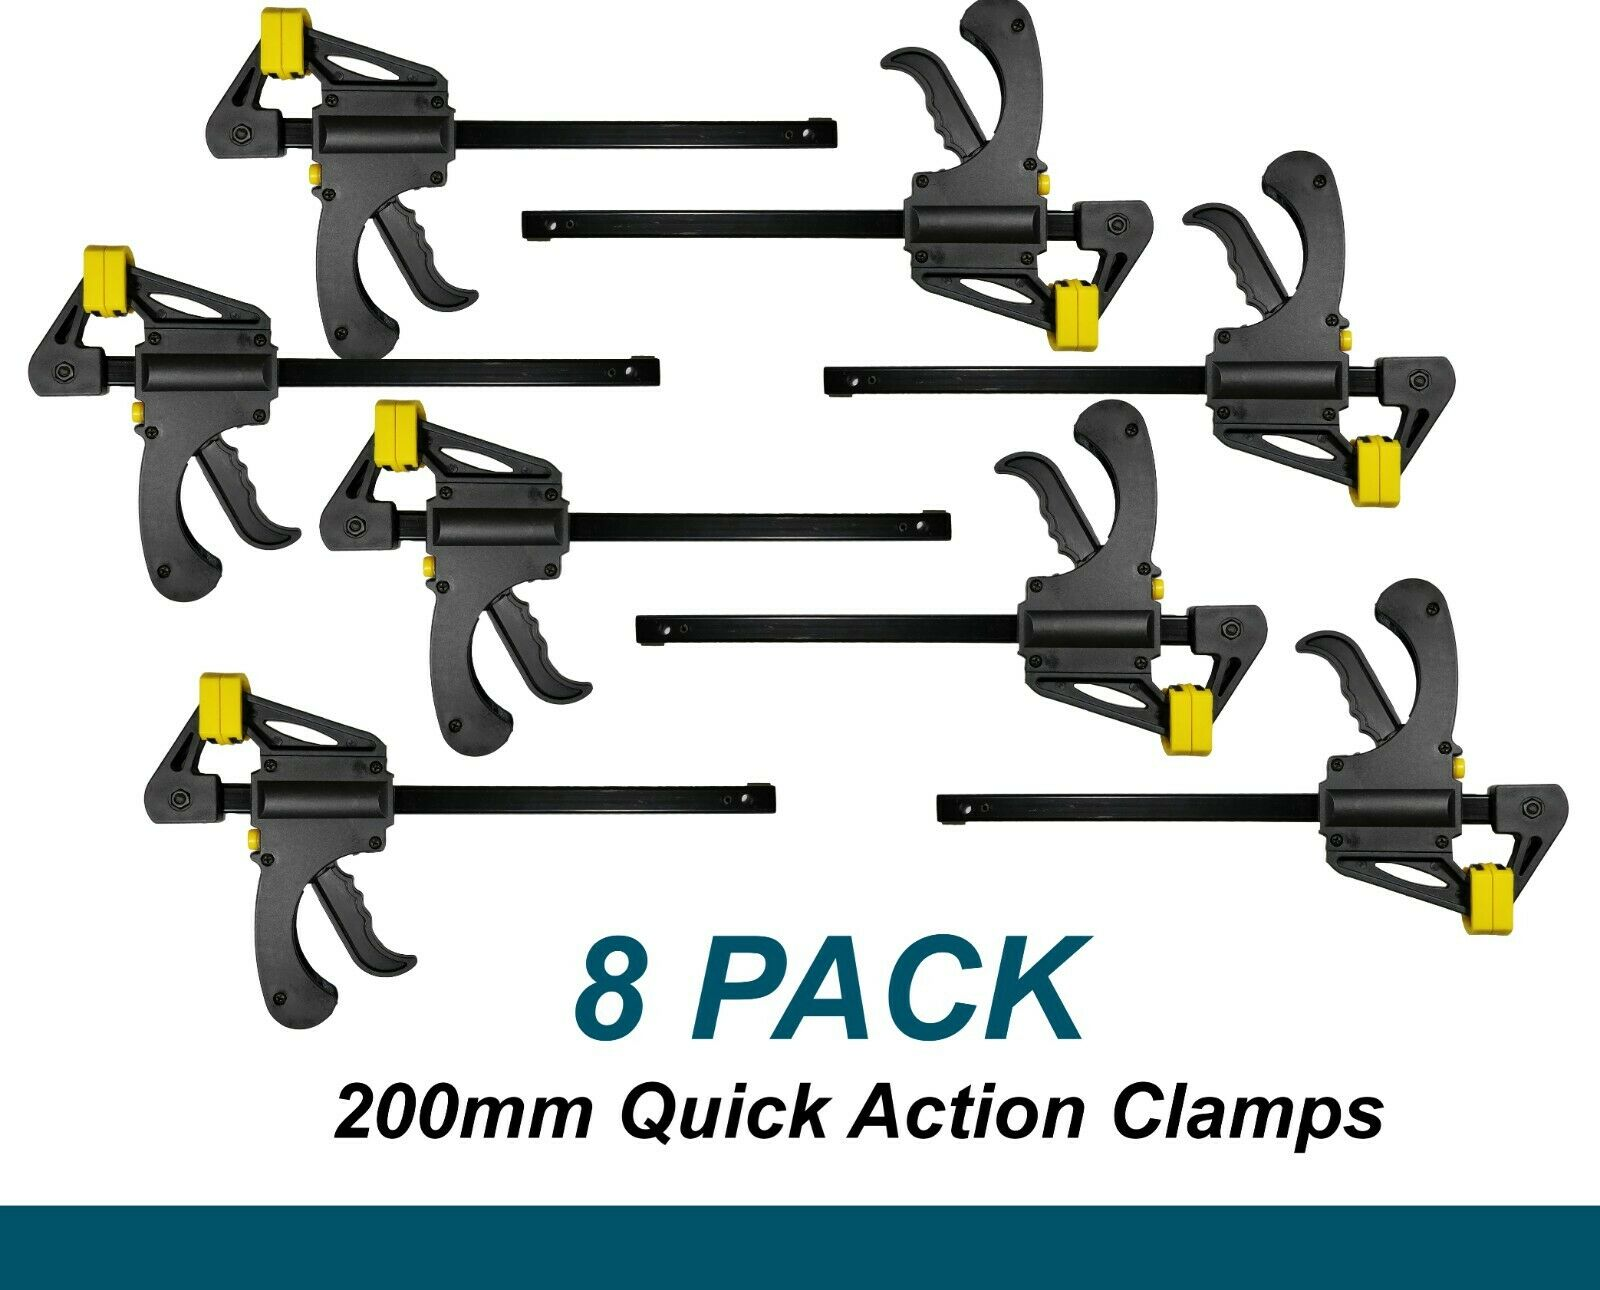 8 x 200mm Heavy Duty Quick Action Clamps for Woodworking etc